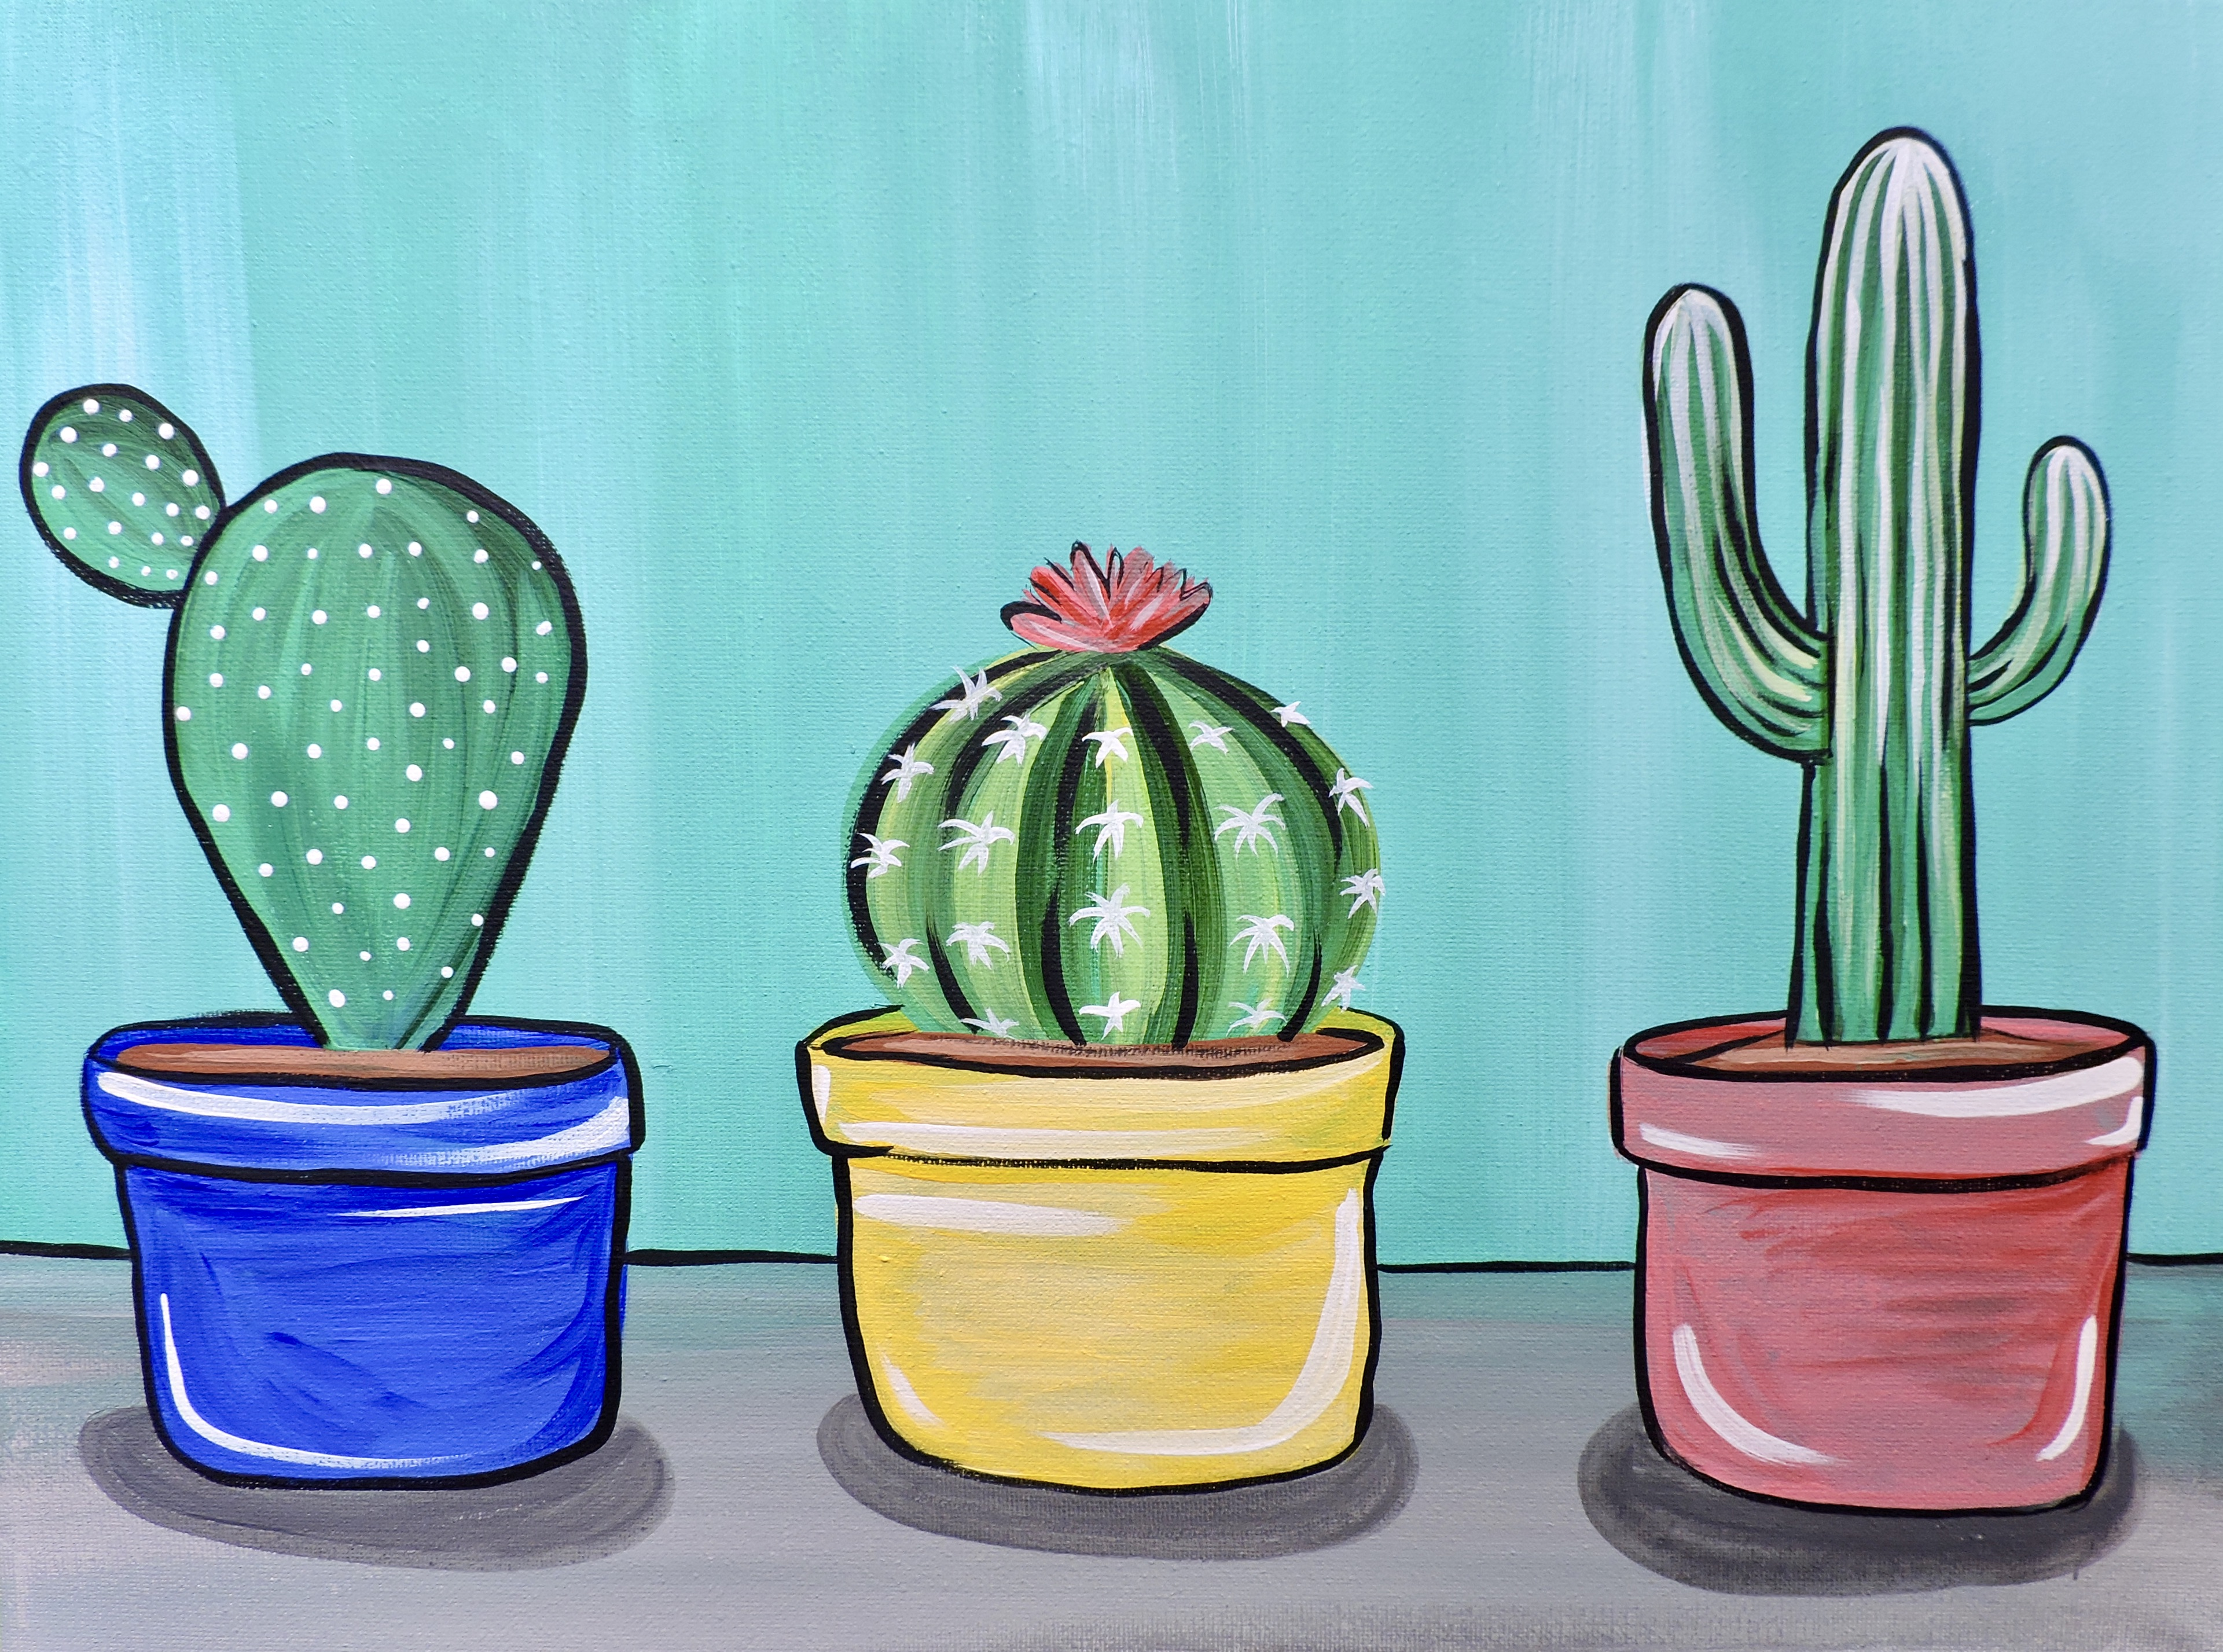 New Video Happy Cacti Acrylic Painting Tutorial For Beginners Skye Pratt Teaching Artist